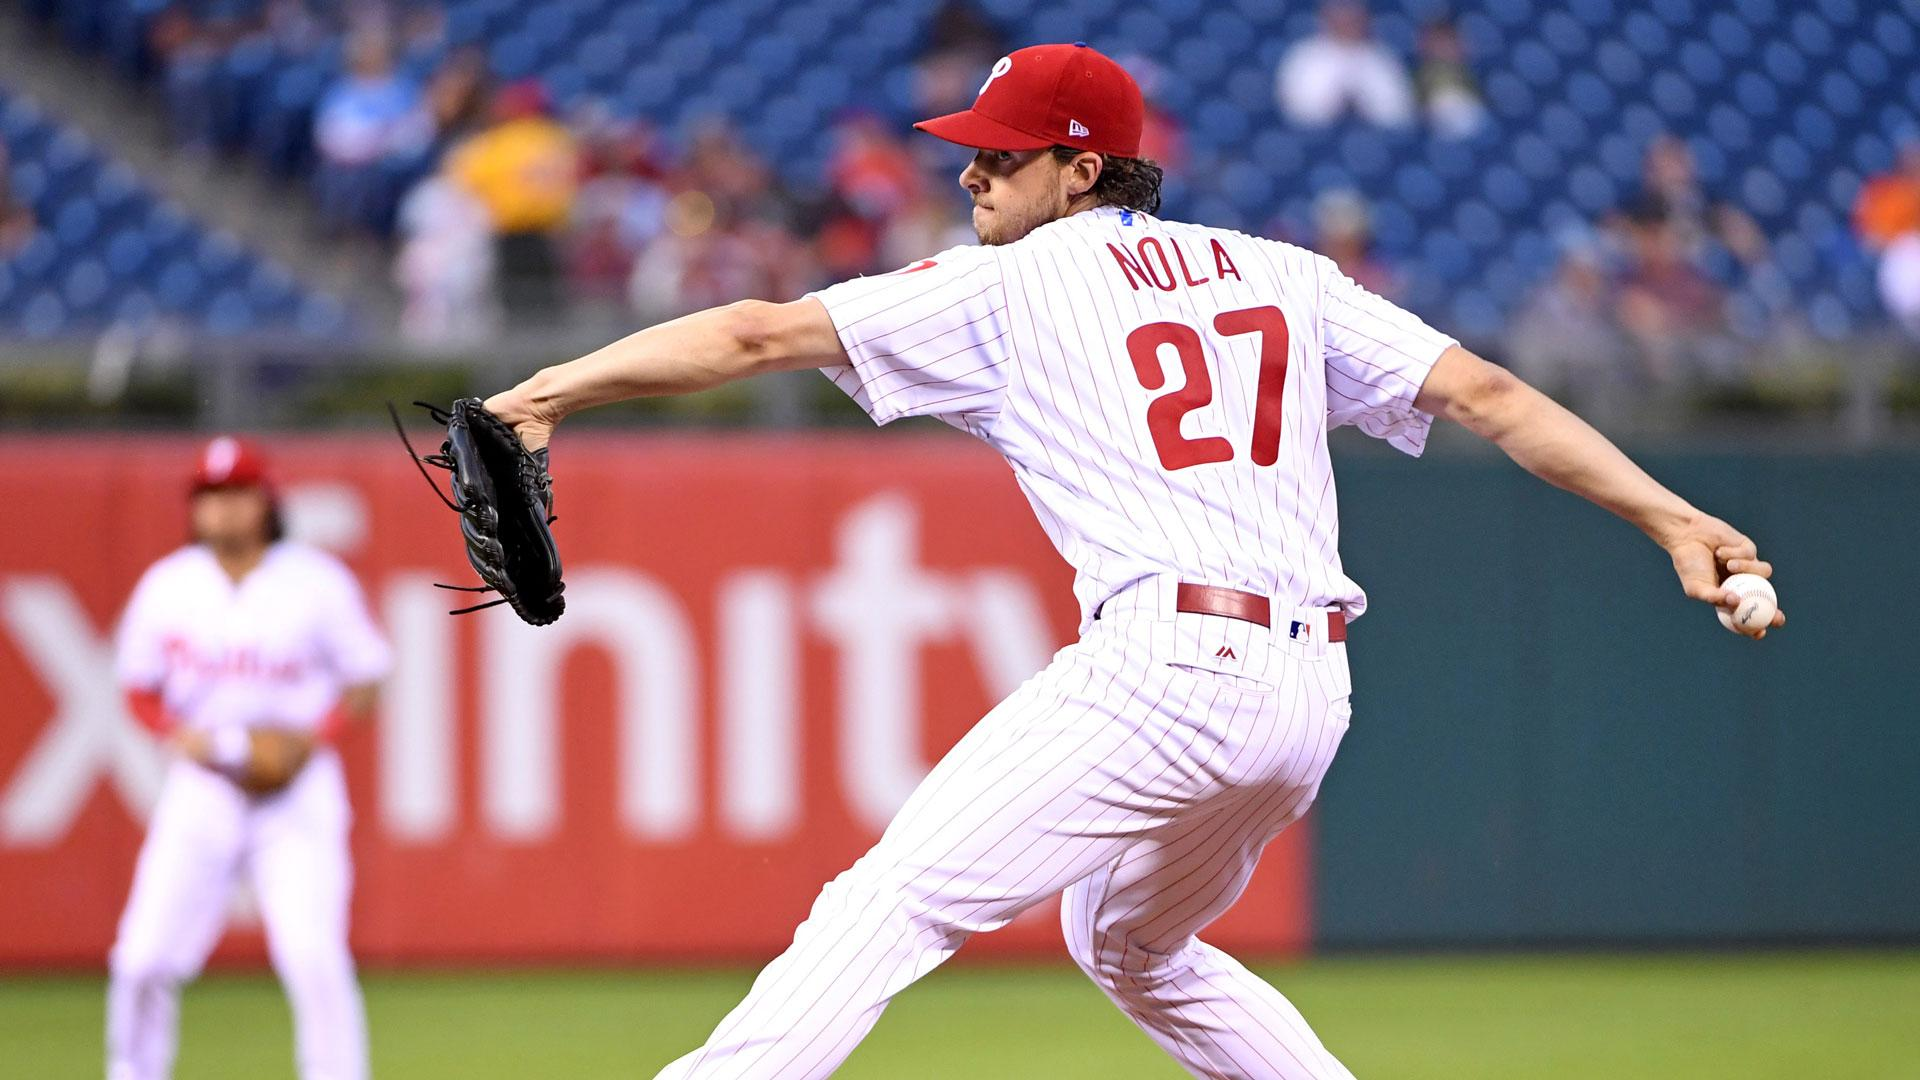 Ricky Bottalico: Aaron Nola made 'statement to the Marlins' | NBC ...